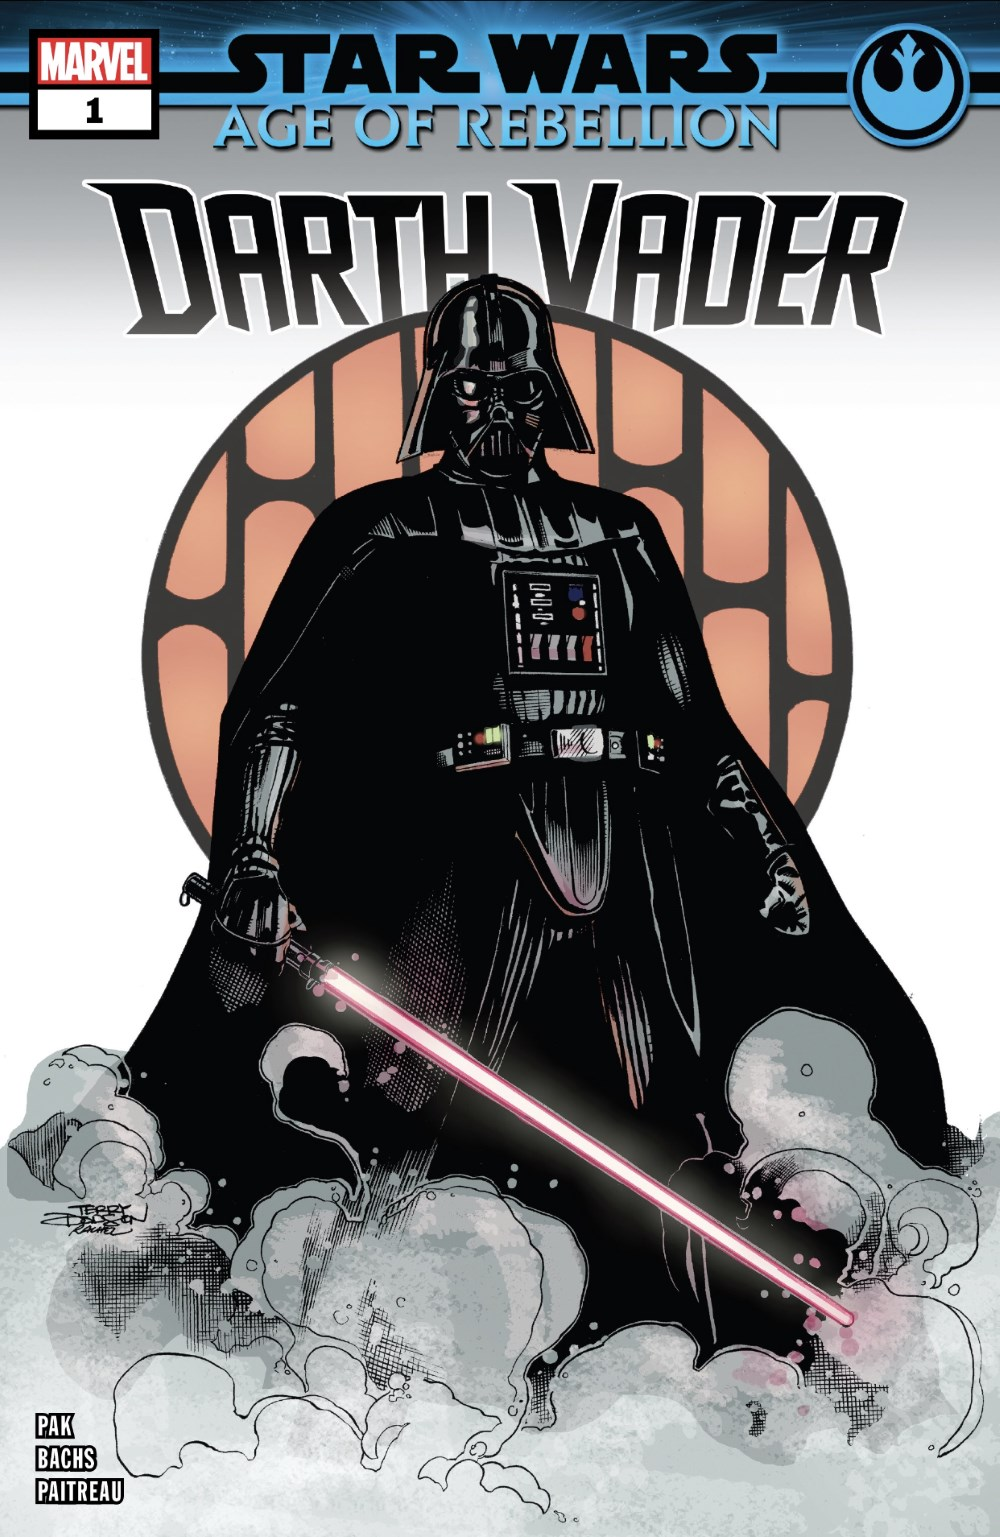 Age of Rebellion - Darth Vader #1 Cover